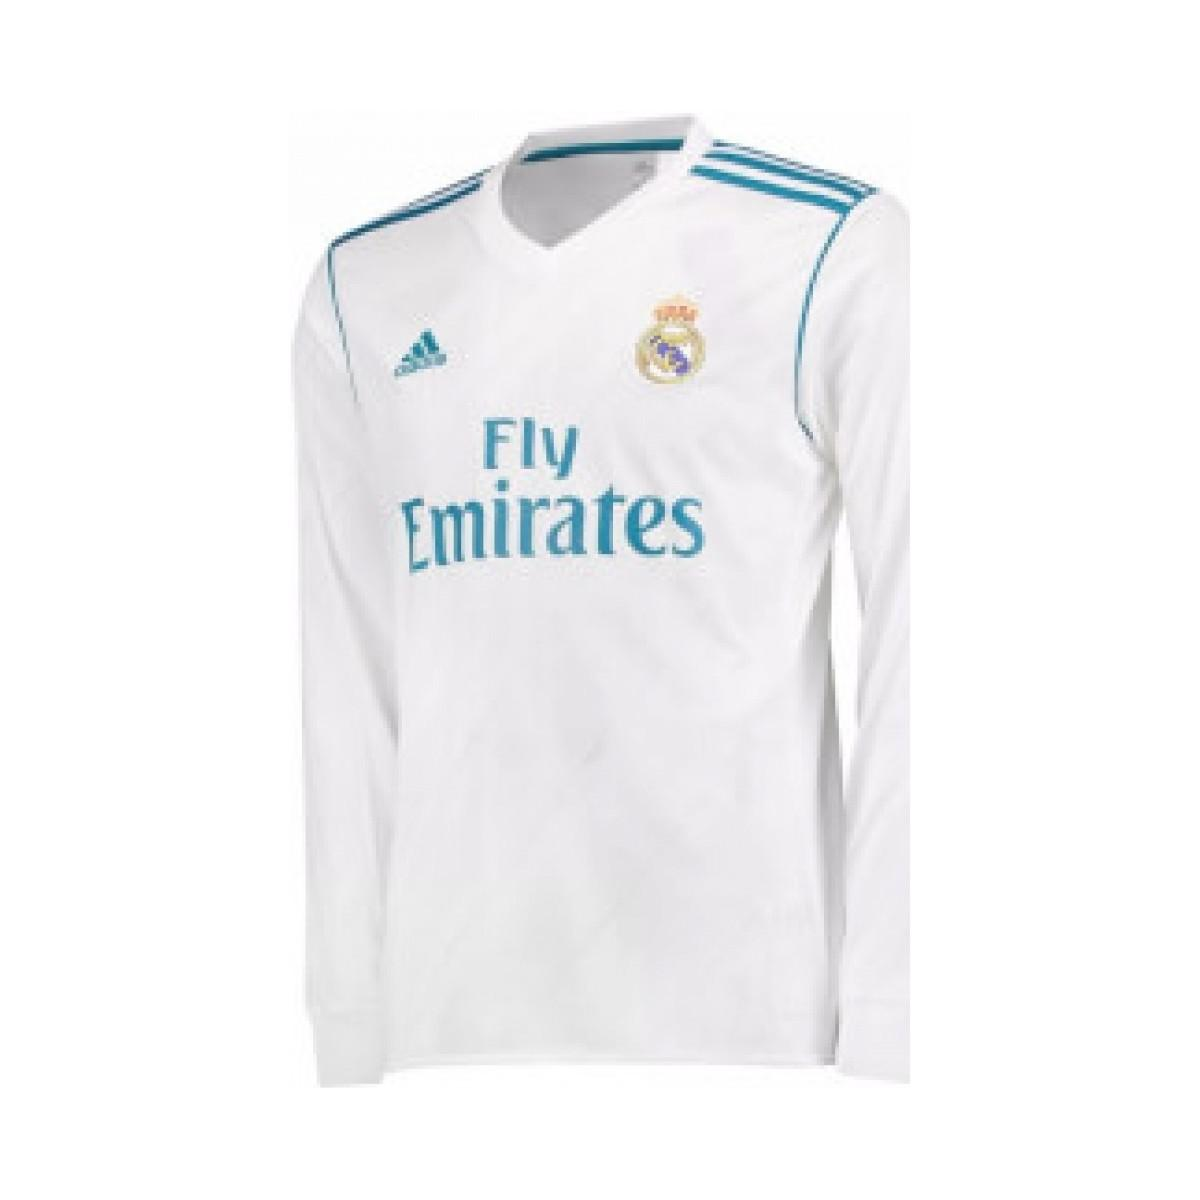 5147e1407 Adidas - 2017-18 Real Madrid Long Sleeve Home Shirt (beckham 23) Women s.  View fullscreen